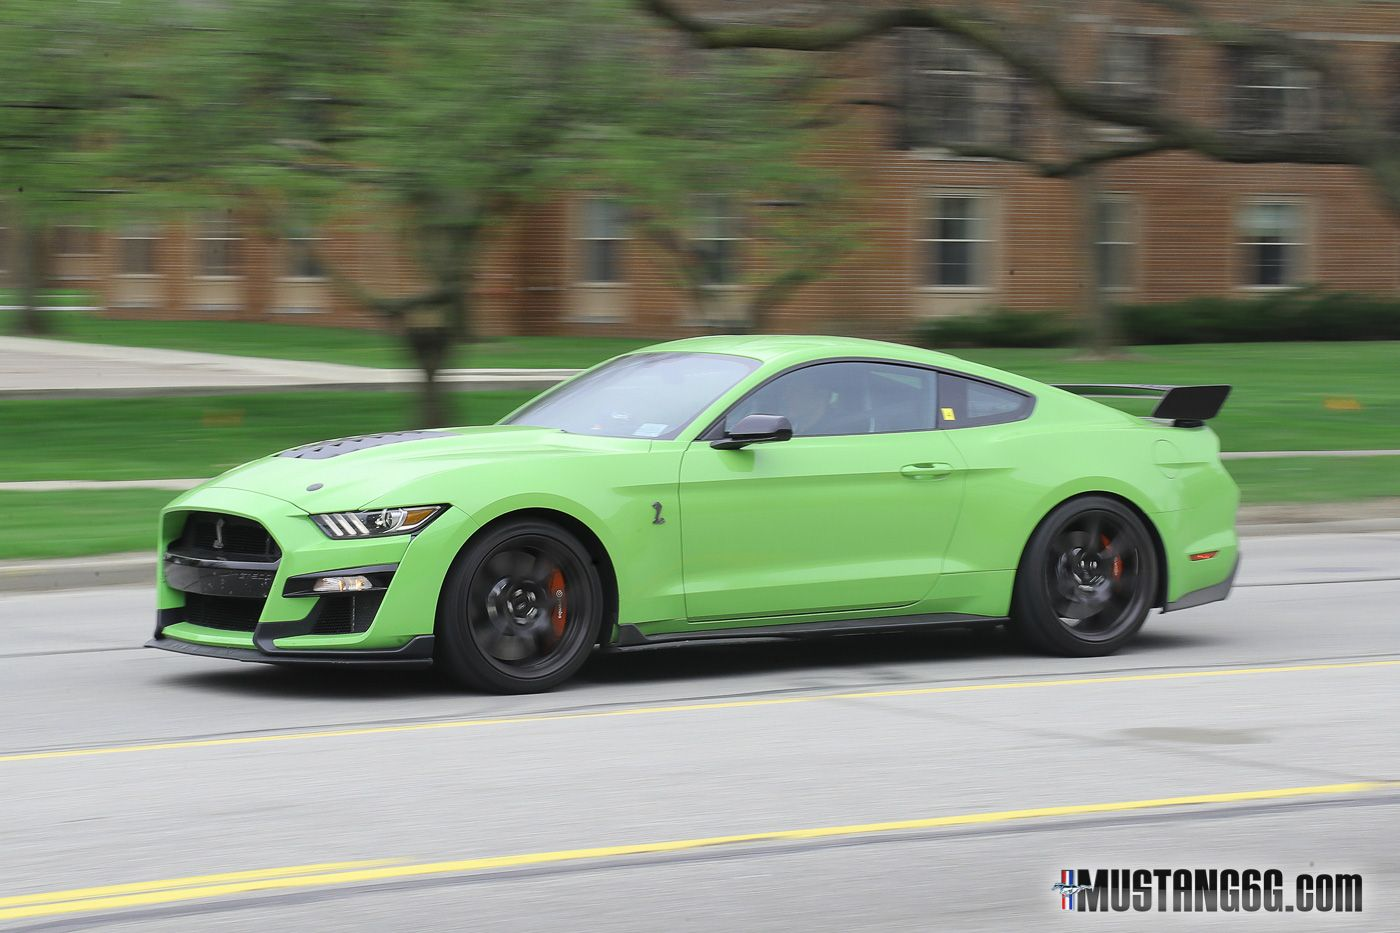 Spied 2020 Shelby Gt500 In Race Red And Grabber Lime 2015 S550 Mustang Forum Gt Ecoboost Gt350 Gt500 Bullitt Shelby Gt500 Classic Car Insurance Gt500